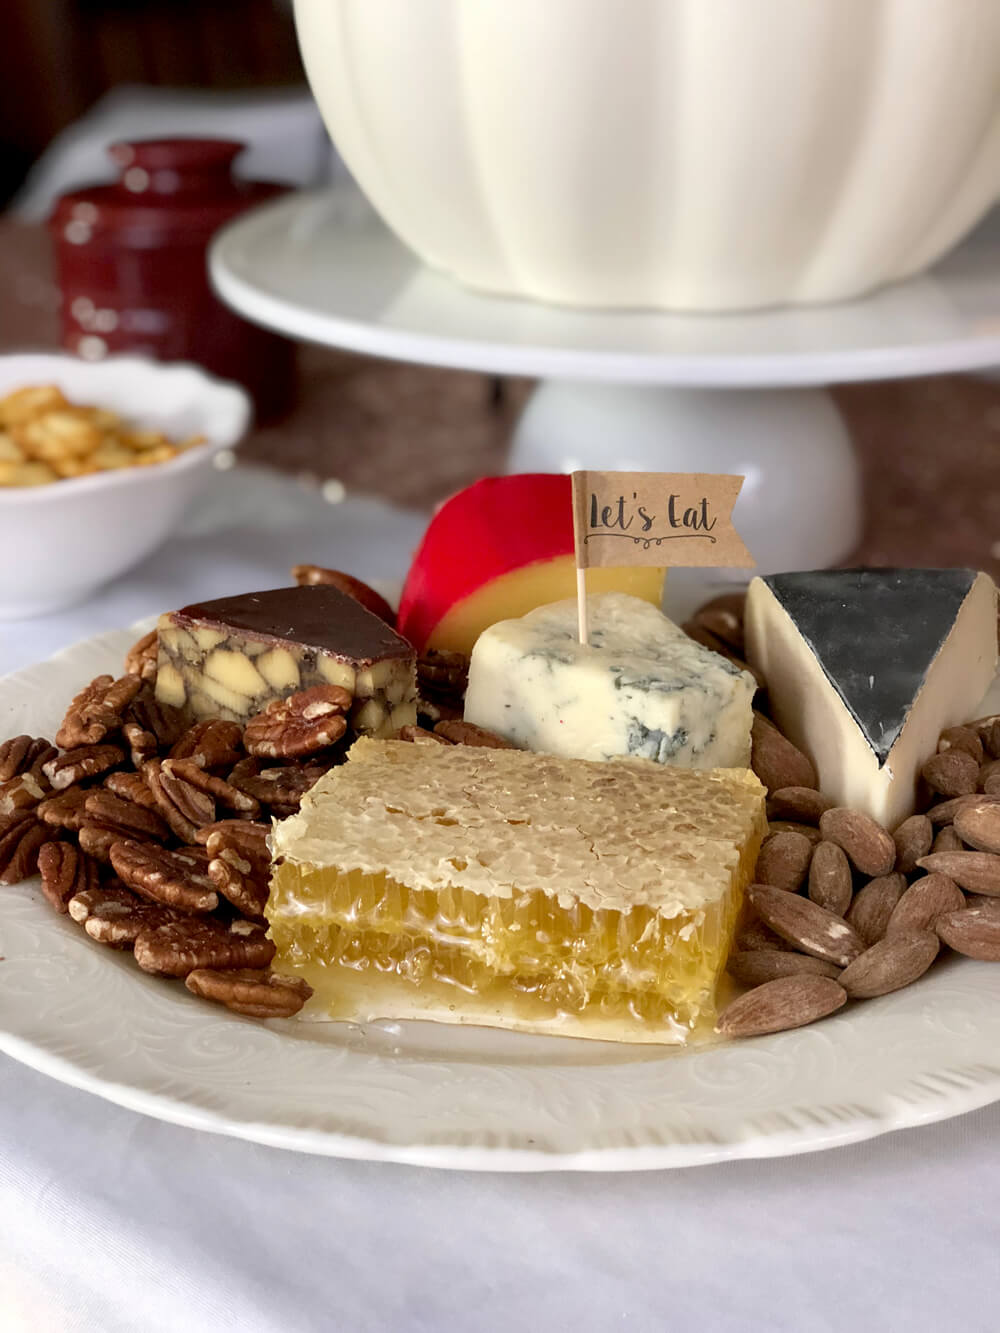 Cheese plate with honeycomb for girls night harvest party menu ideas